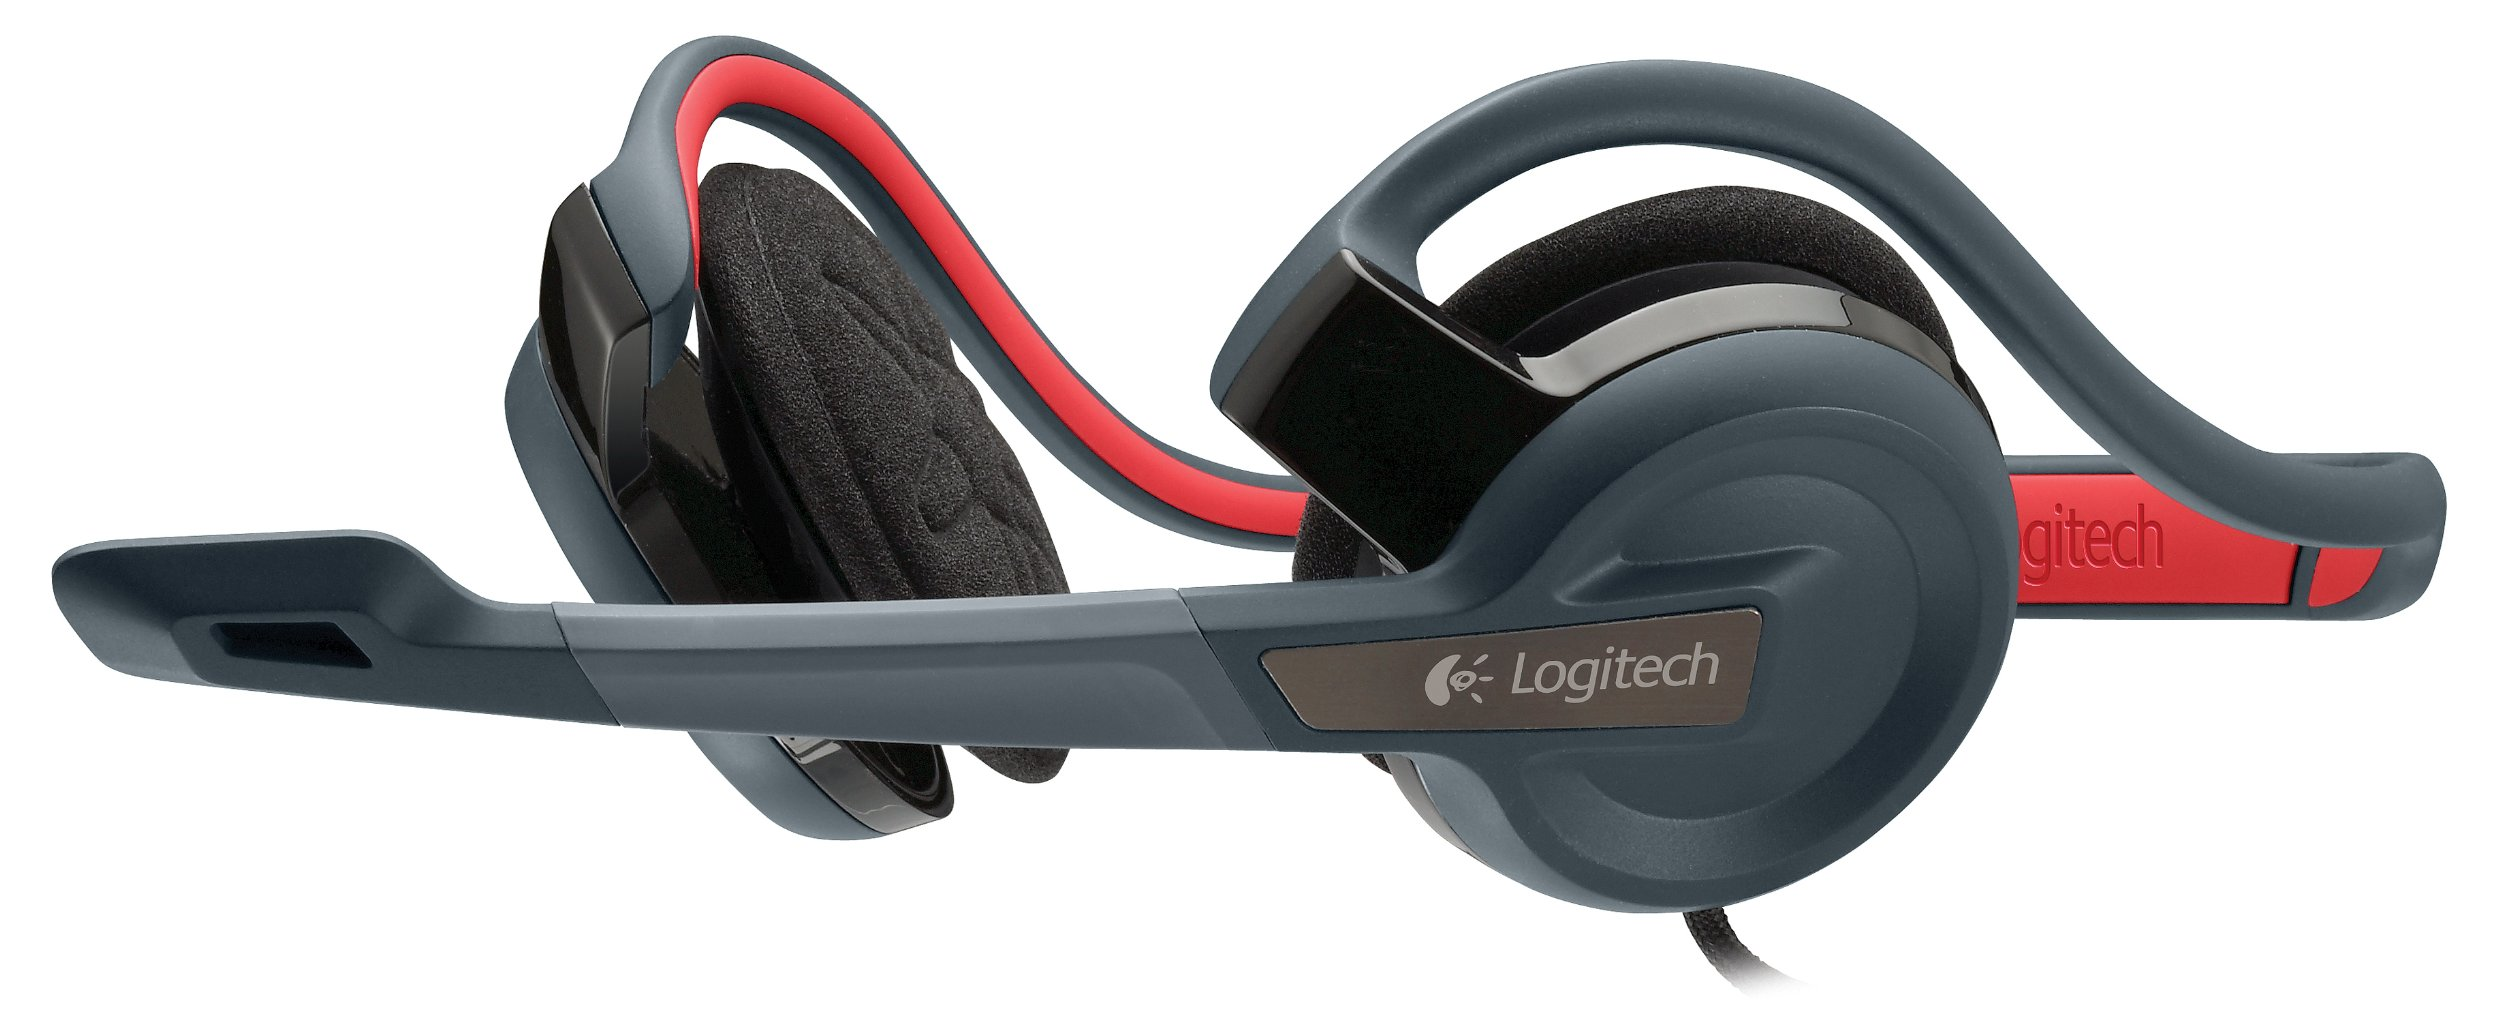 Logitech Gaming Headset G330 - Headset (behind-the-neck) with USB Adapter